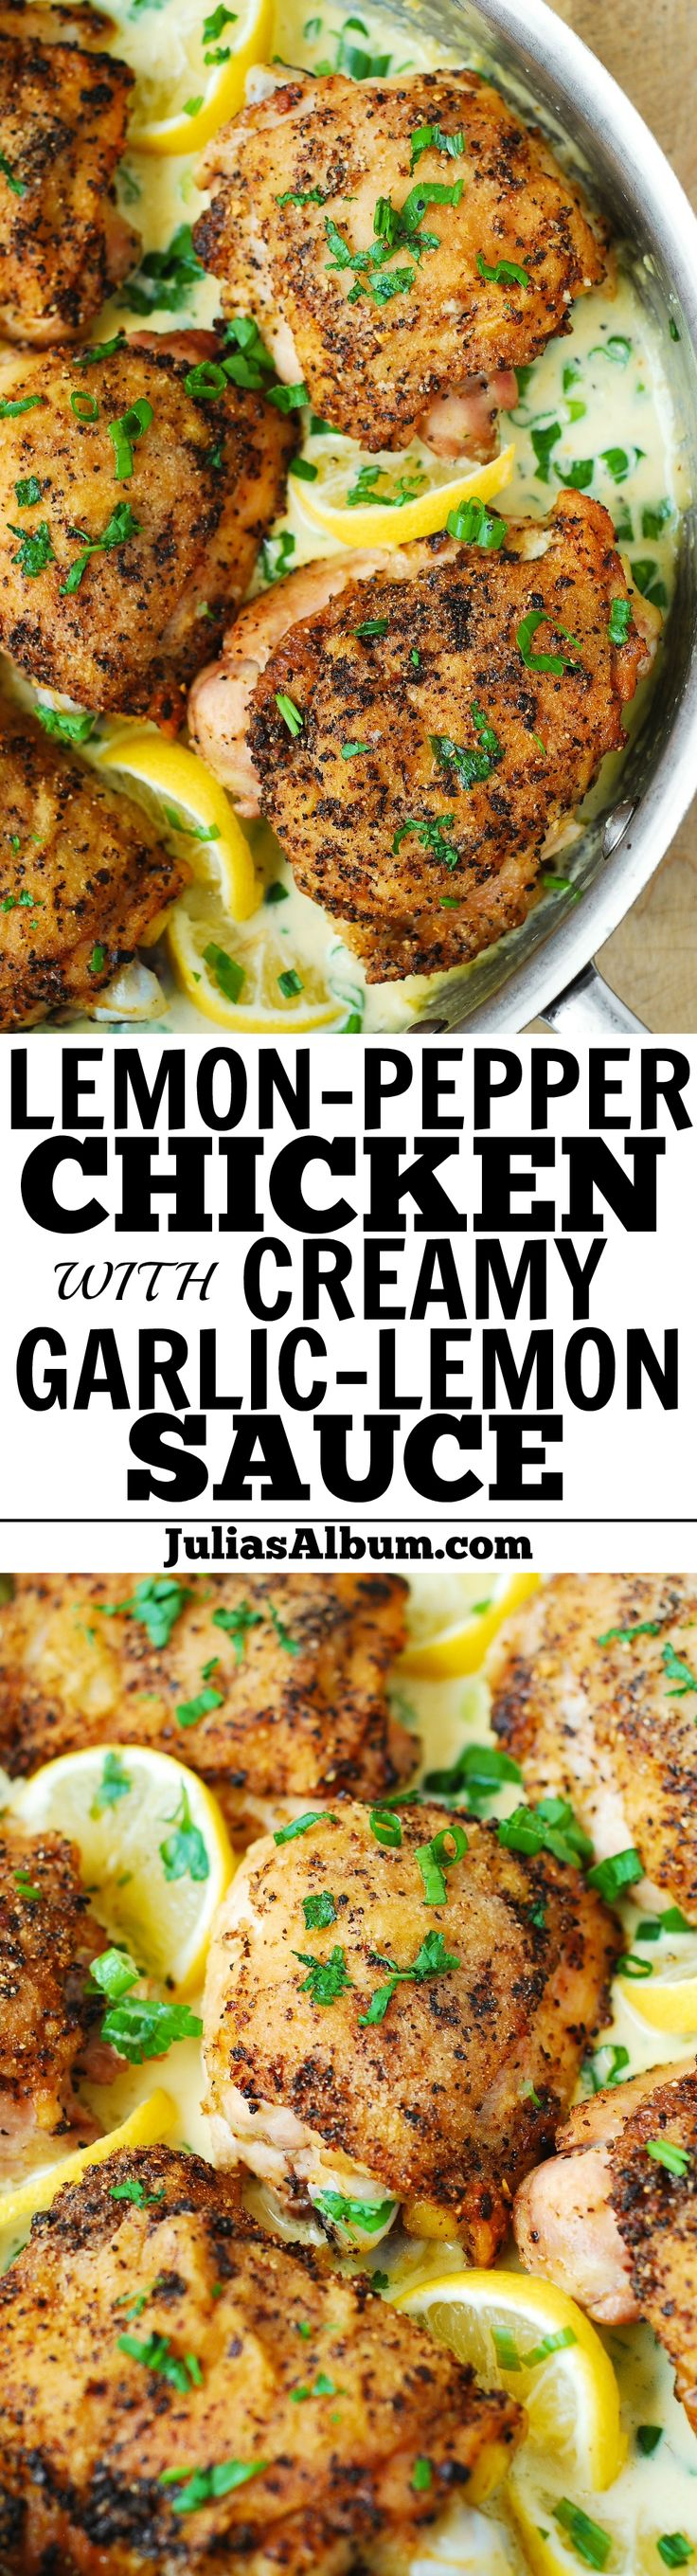 Baked Lemon-Pepper Chicken Thighs with creamy white cheese garlic-lemon sauce.